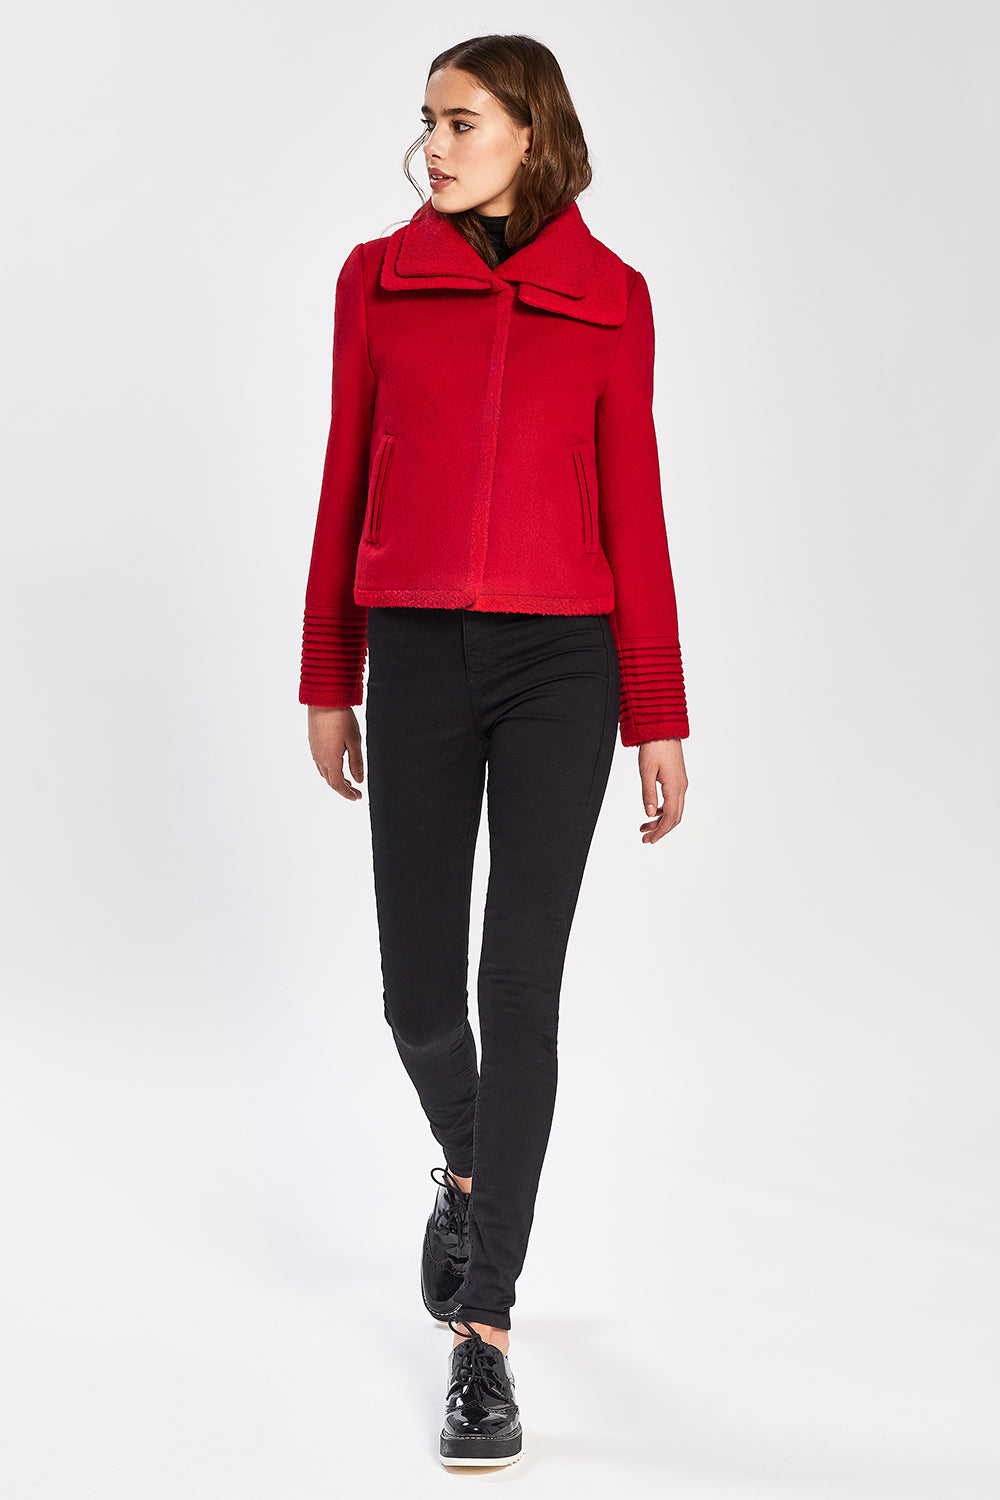 Sentaler Moto Jacket with Signature Double Collar featured in Baby Alpaca and available in Scarlet Red. Seen from front.